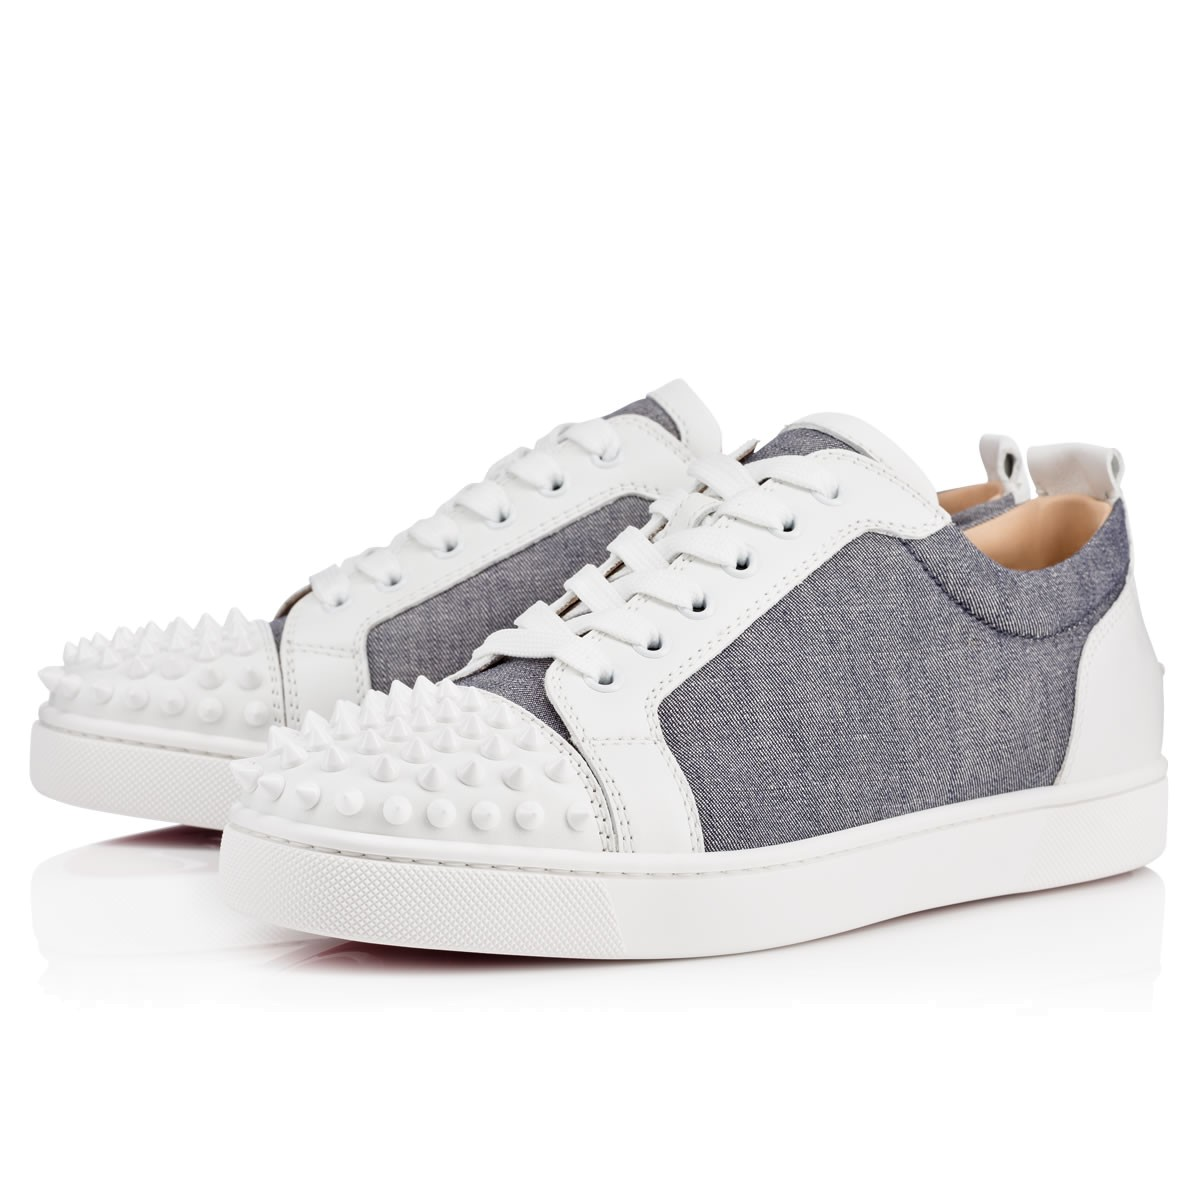 Christian Louboutin Men S Junior Spike White And Grey Trainers